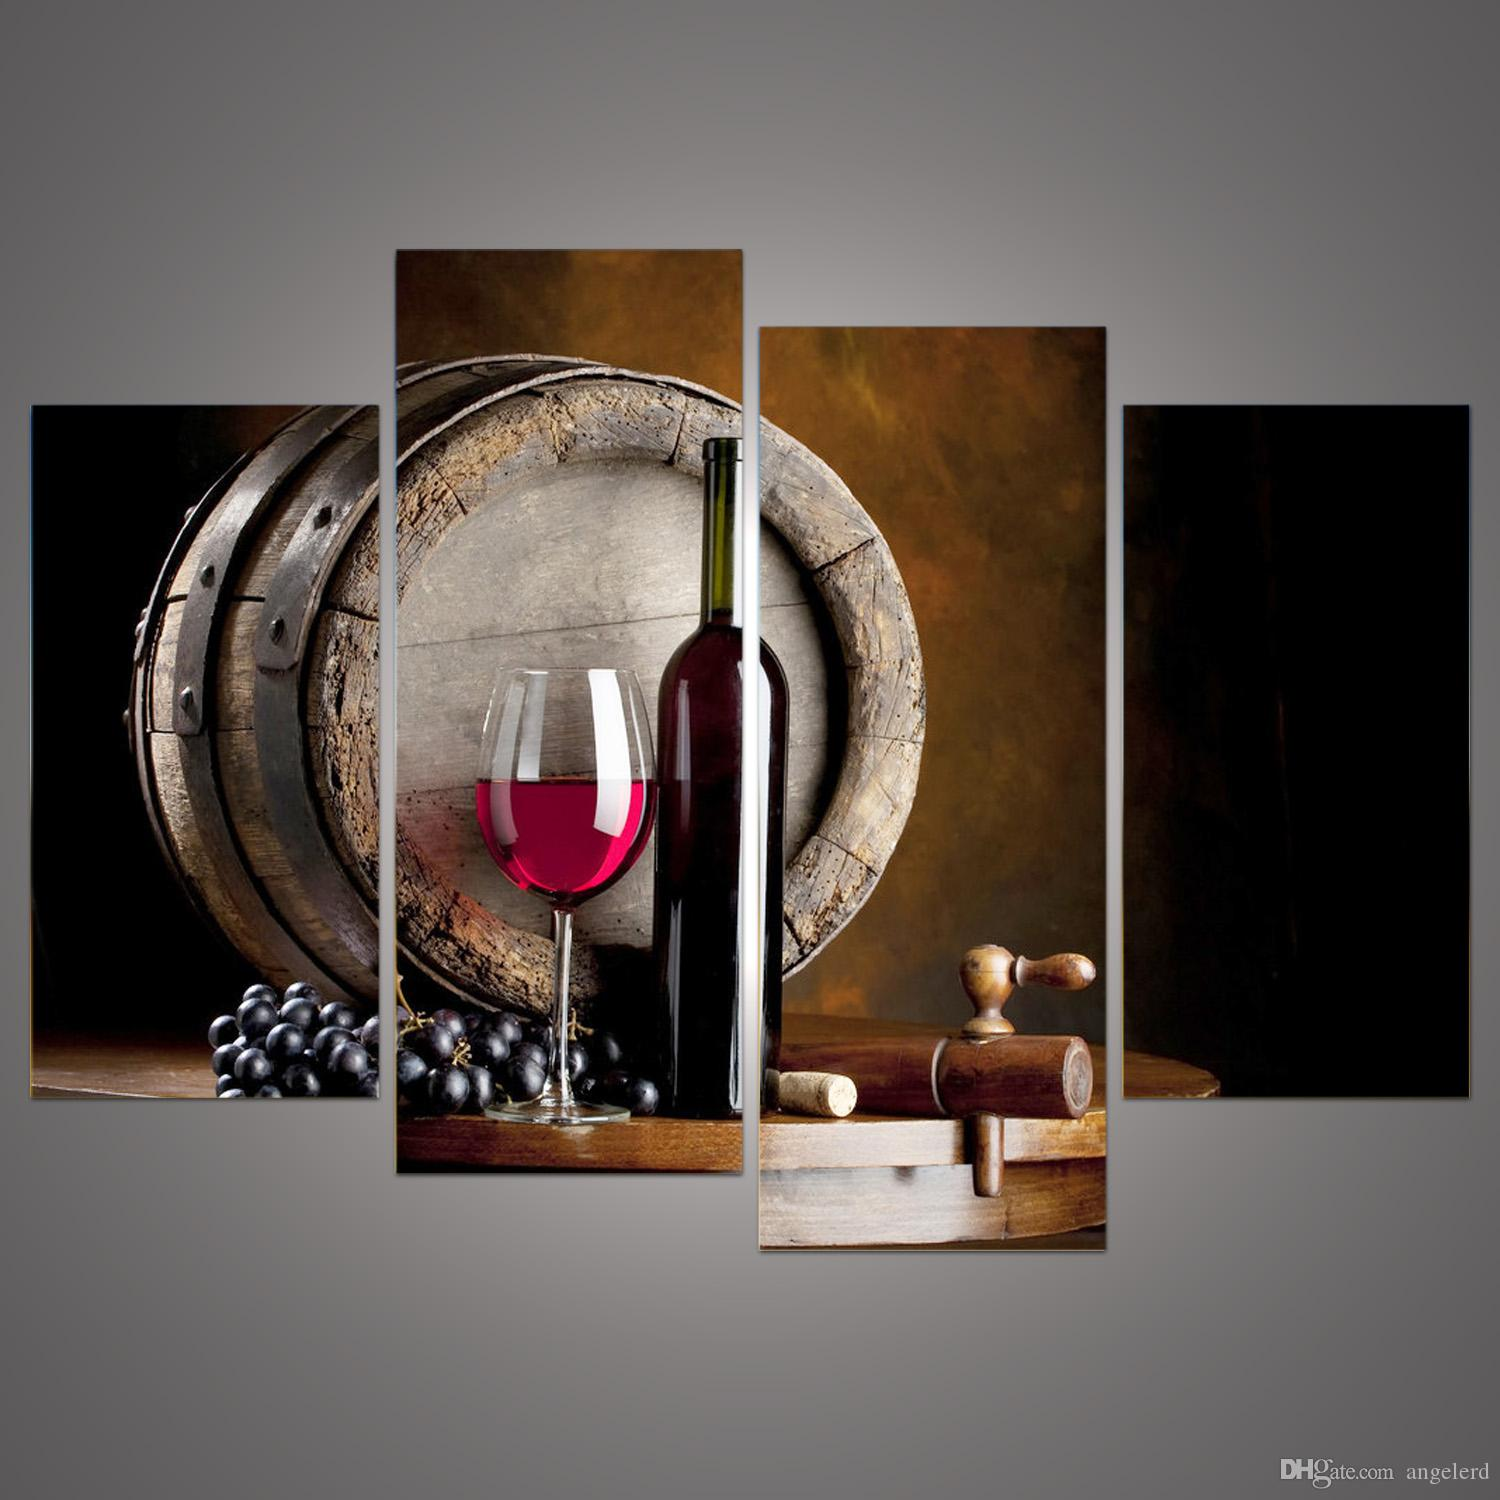 2019 modern 4 panels framed still life grape and wine bottle prints on canvas painting flat - Cuadros para el comedor ...